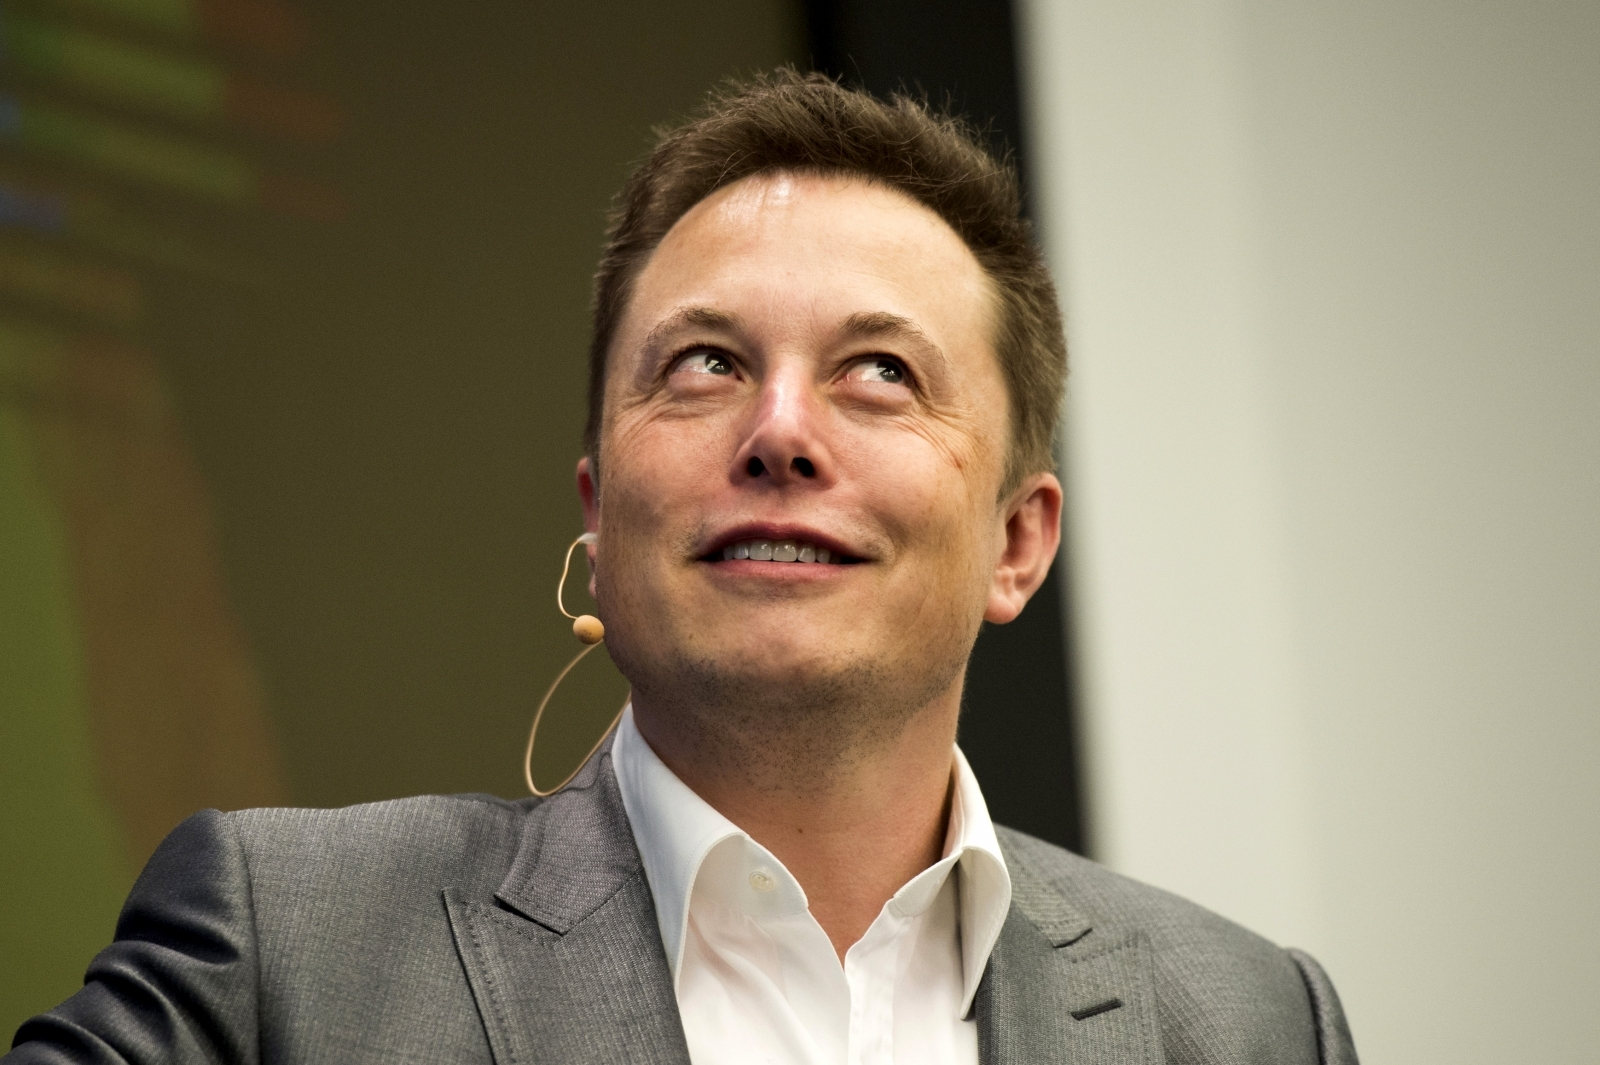 Elon Musk accidentally tweeted his phone number